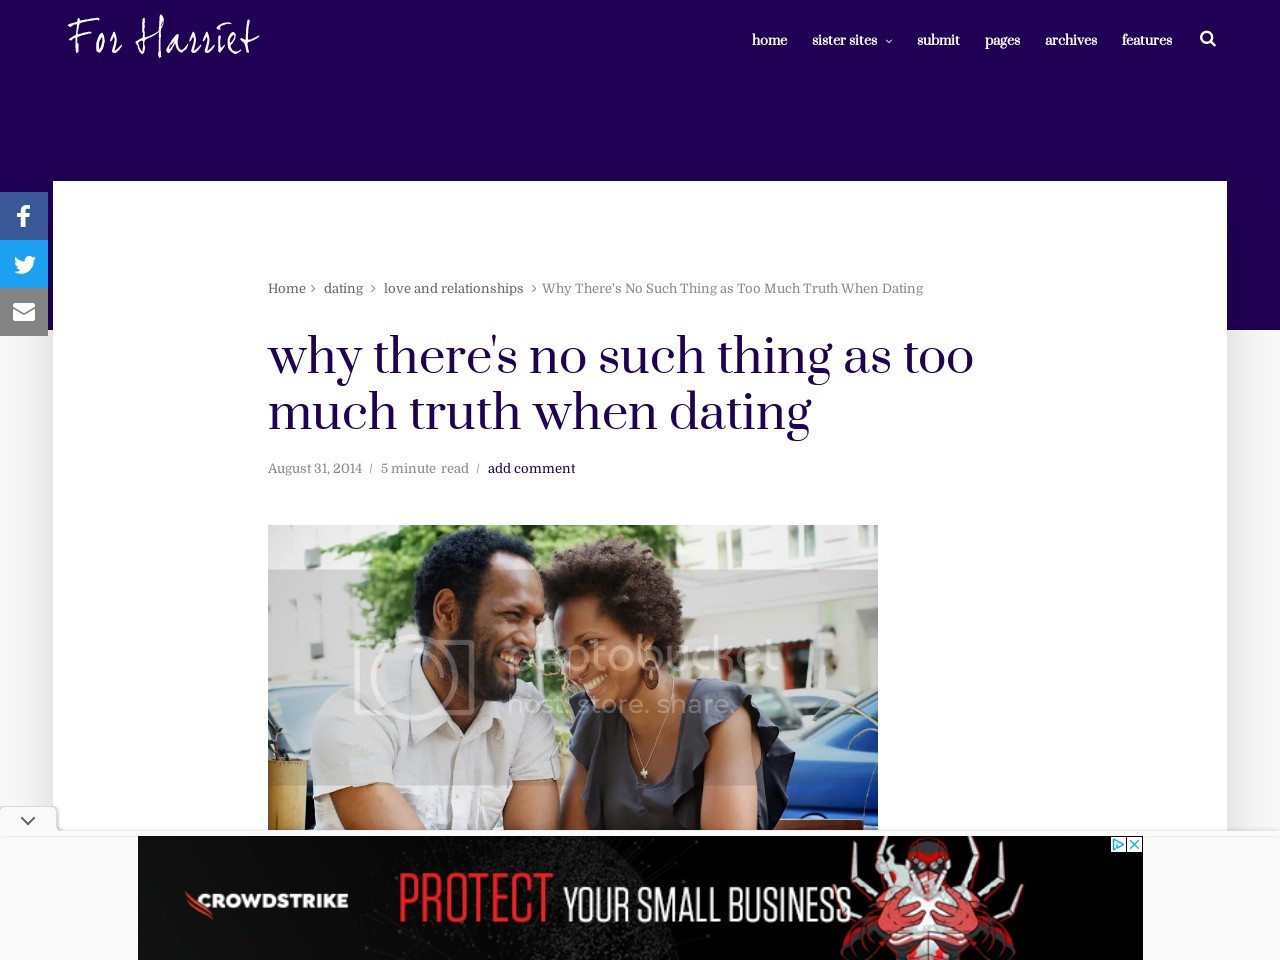 Why There's No Such Thing as Too Much Truth When Dating